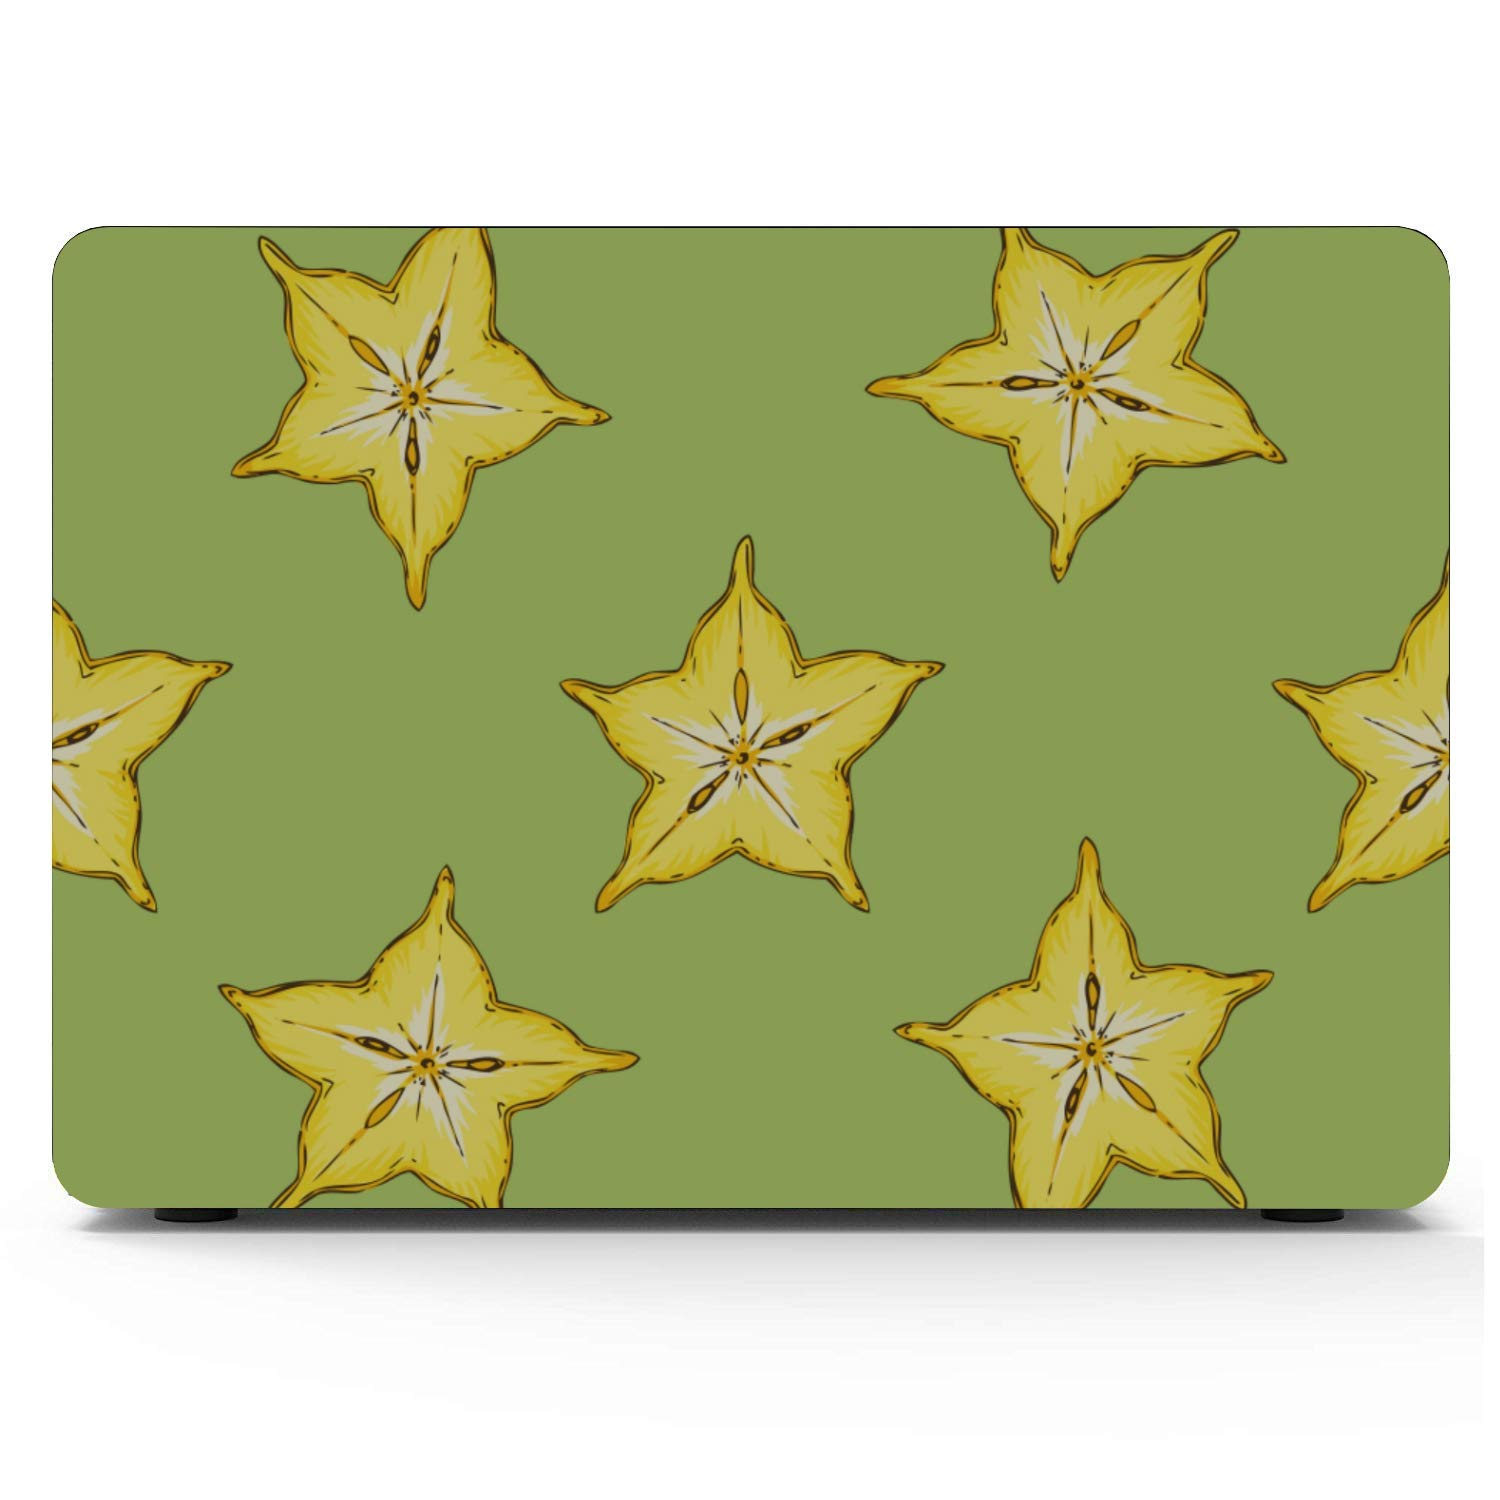 Mac Book Cases Rustic Fashion Cute Fruit Carambola Plastic Hard Shell Compatible Mac Air 11 Pro 13 15 MacBook Air Cases Protection for MacBook 2016-2019 Version